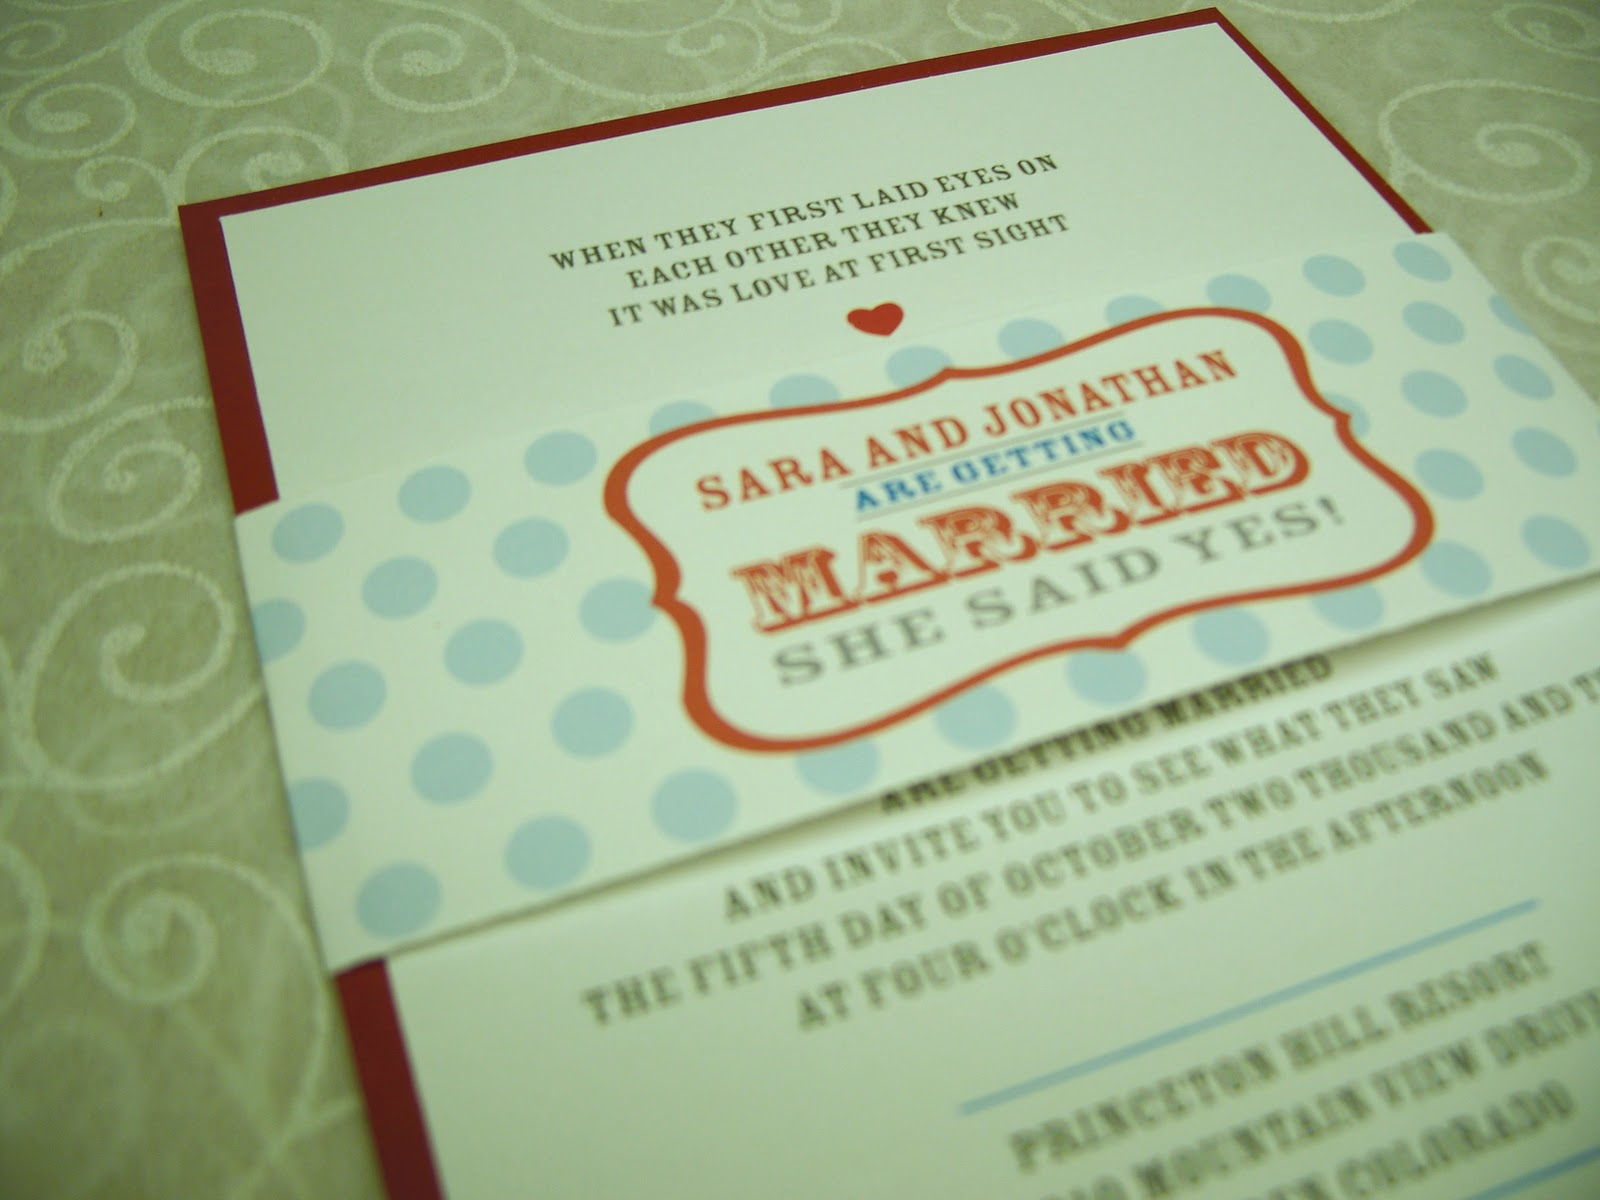 Dyi Wedding Invitations: DIY WEDDING PROJECTS AND IDEAS FOR